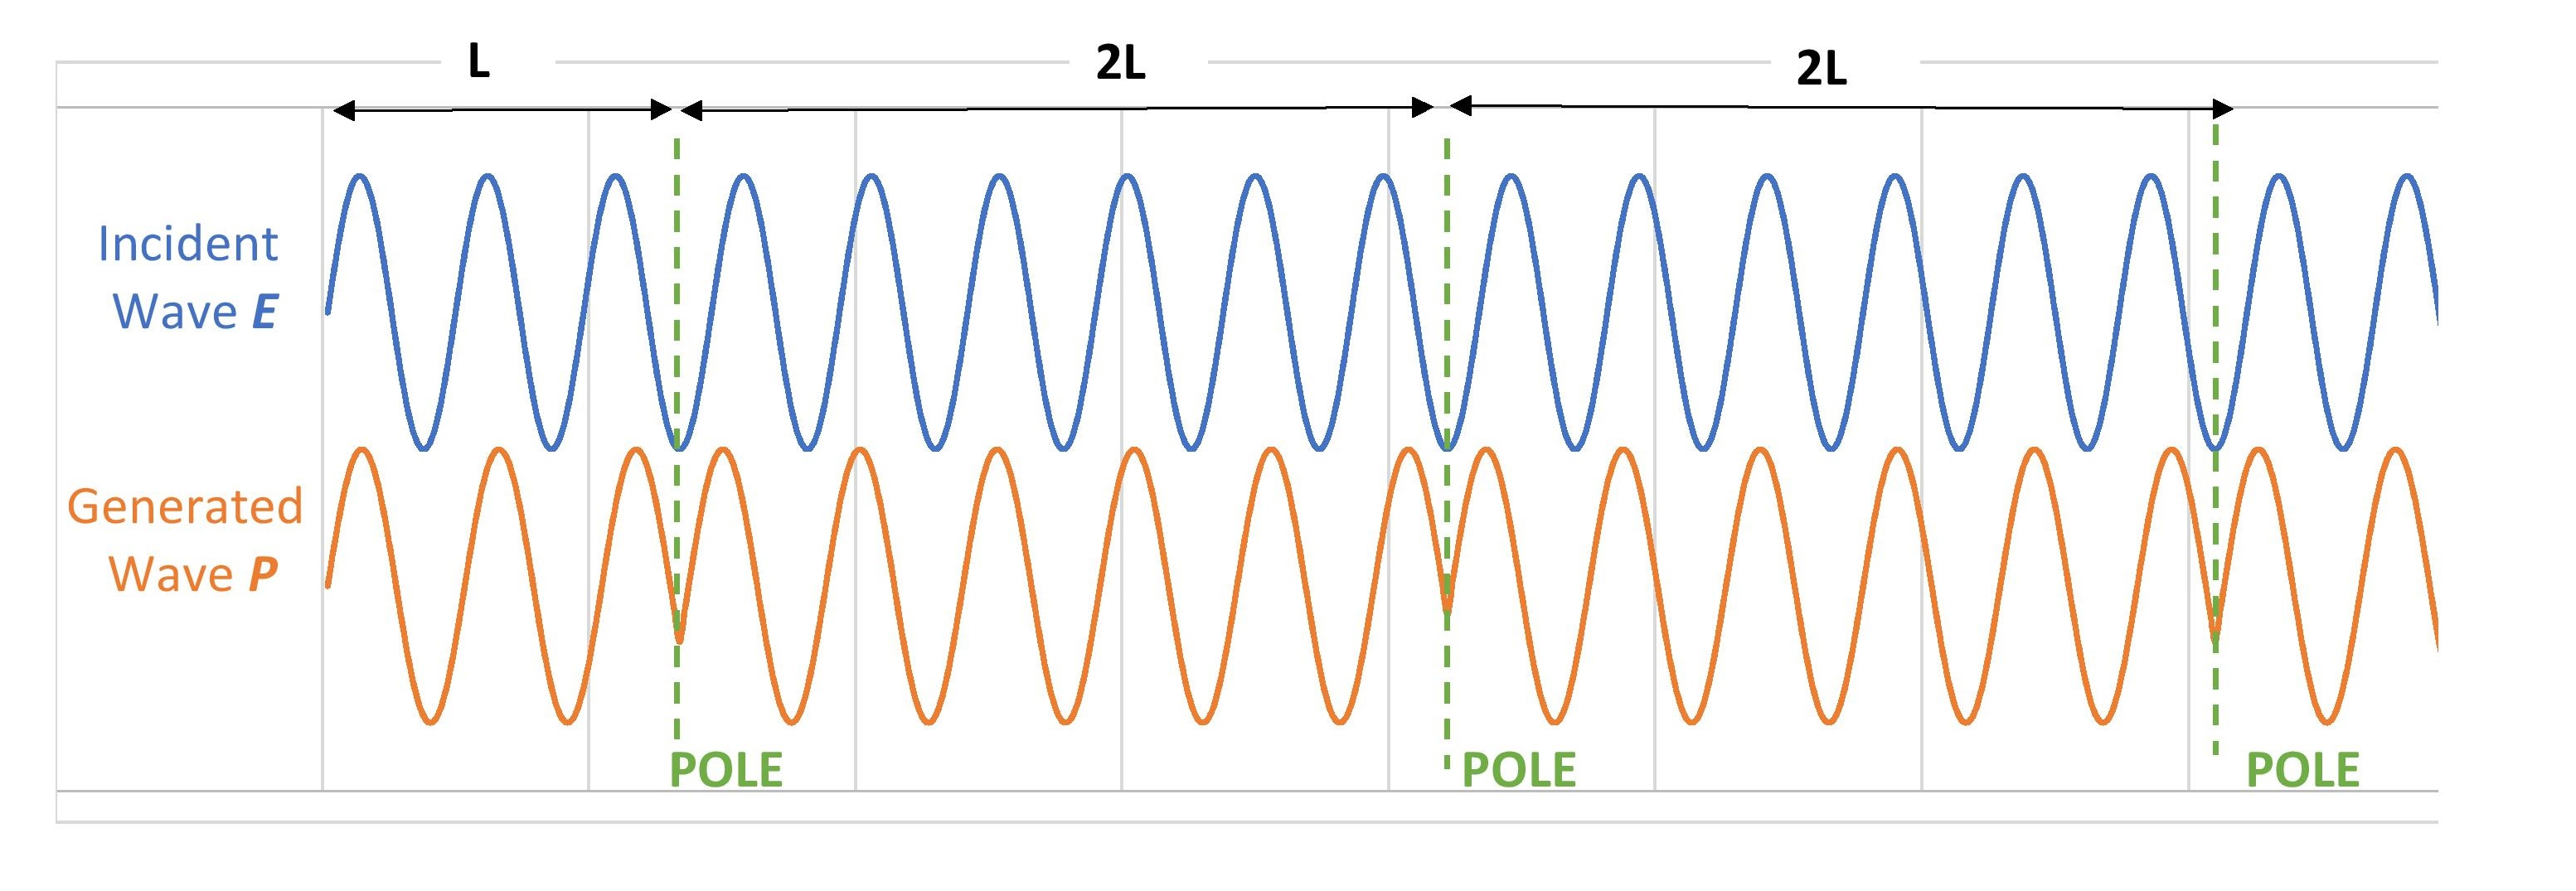 A conceptual illustration of the periodic poling on the generated wave